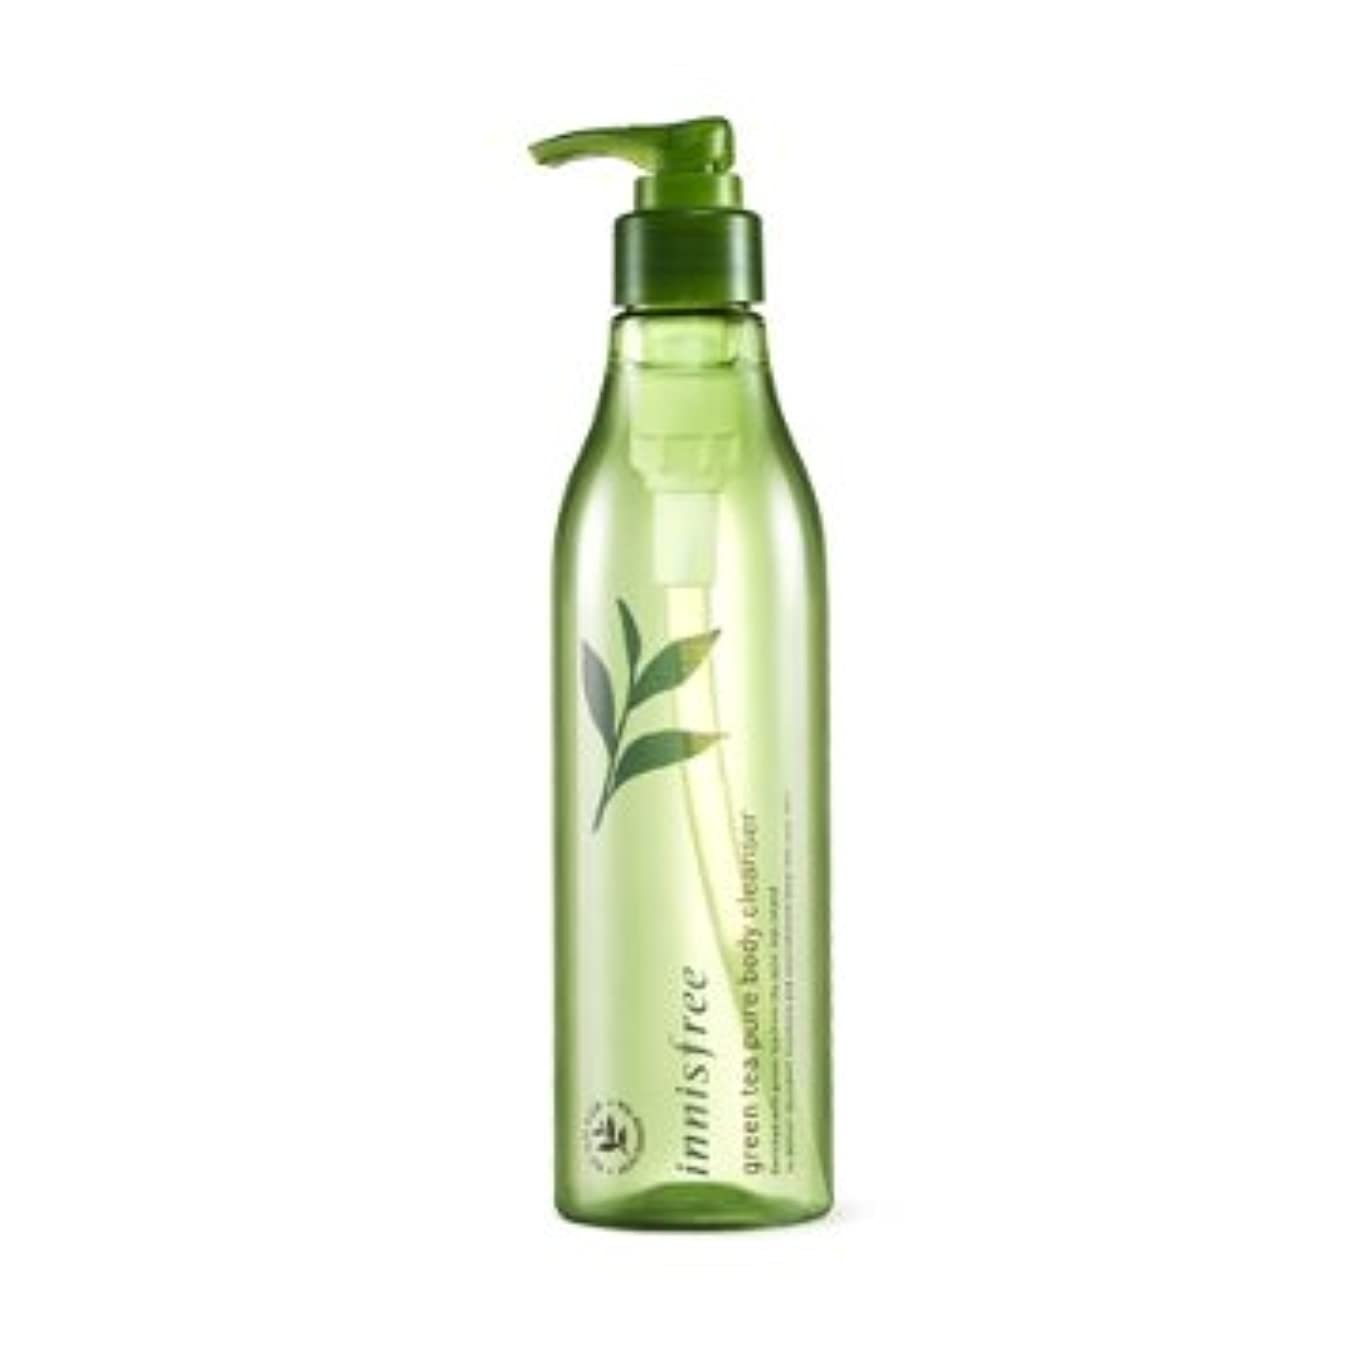 障害会員クローン【イニスフリー】Innisfree green tea pure body cleanser - 300ml (韓国直送品) (SHOPPINGINSTAGRAM)